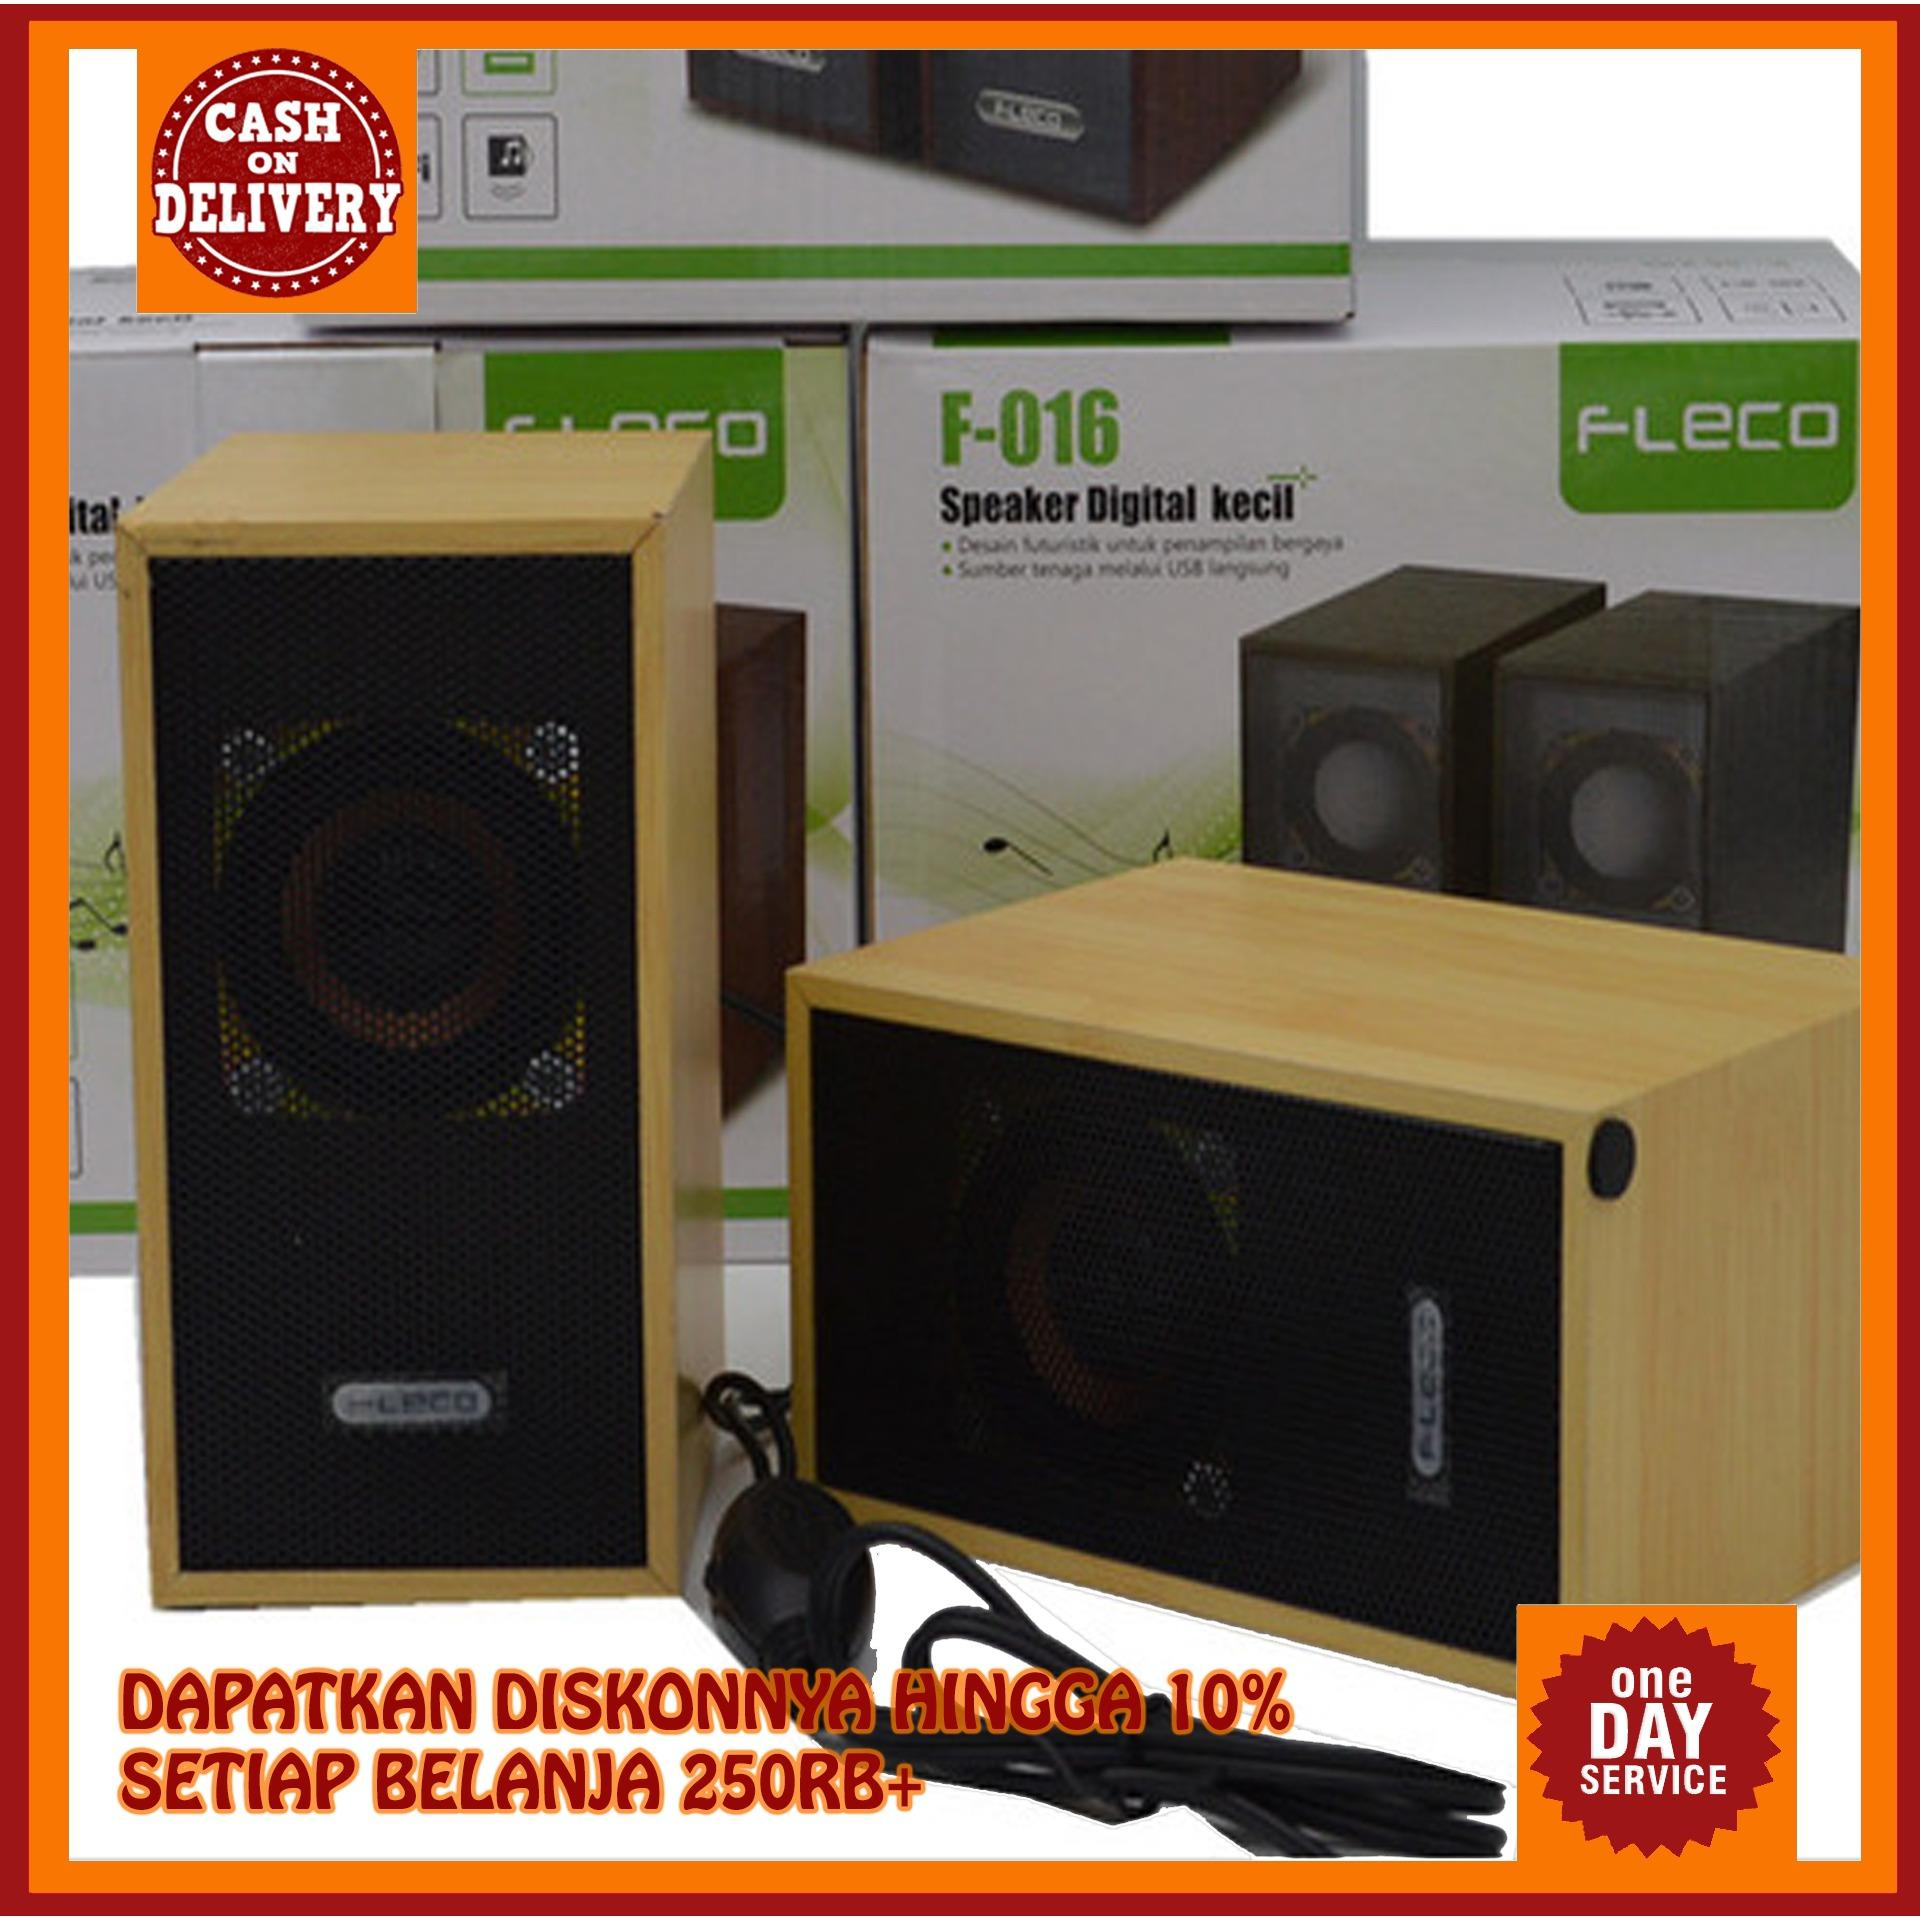 (gratis ongkir) speaker fleco f-016 / speaker active mini digital fleco f016 wooden usb 2.0 superbass mantap f 016 f16 / mega bass musik audio aktif komputer handphone portable